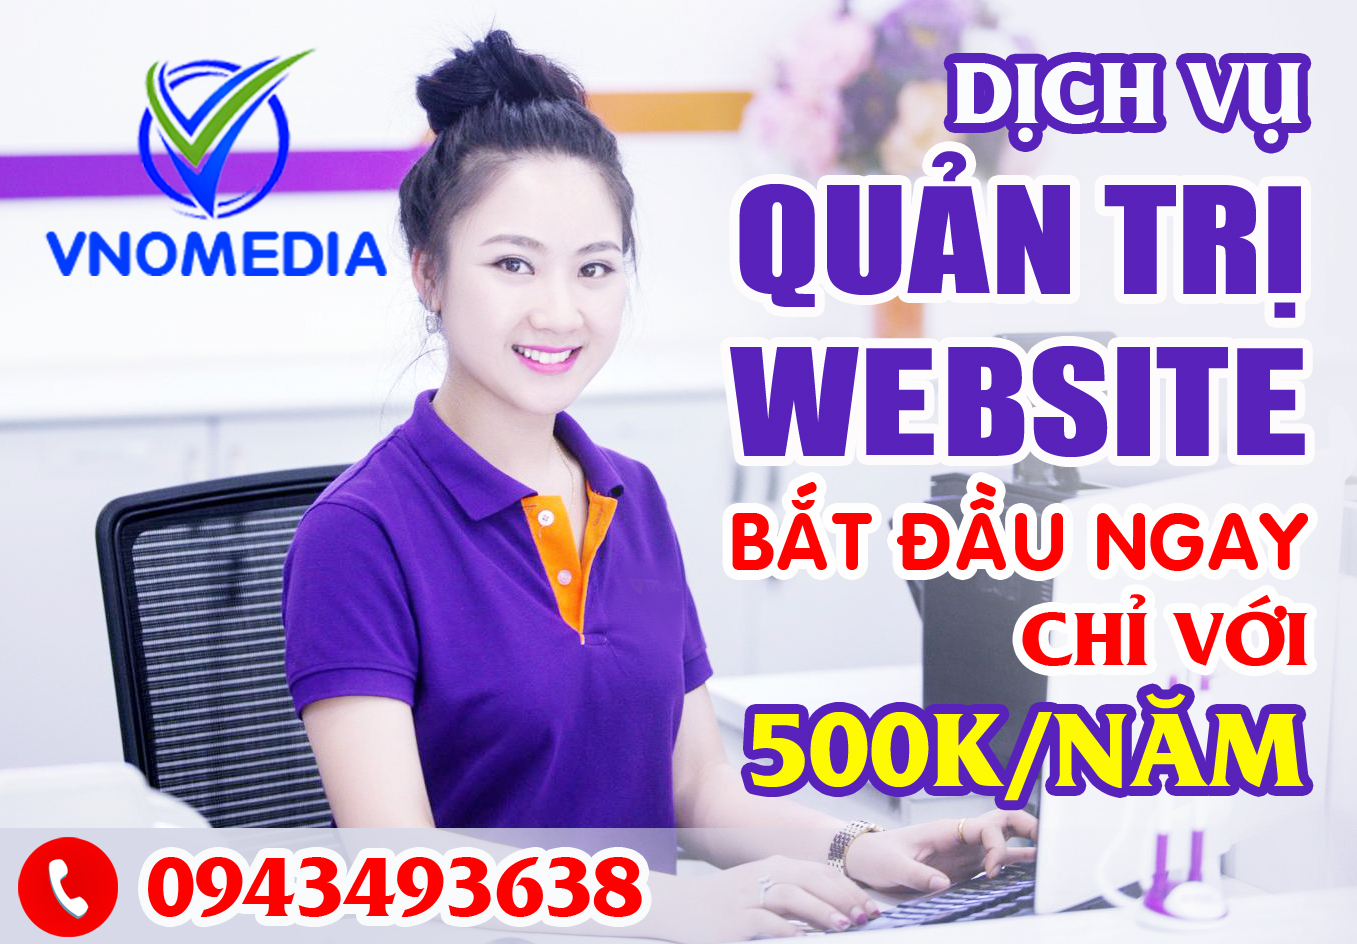 Dich vu quan tri website gia re